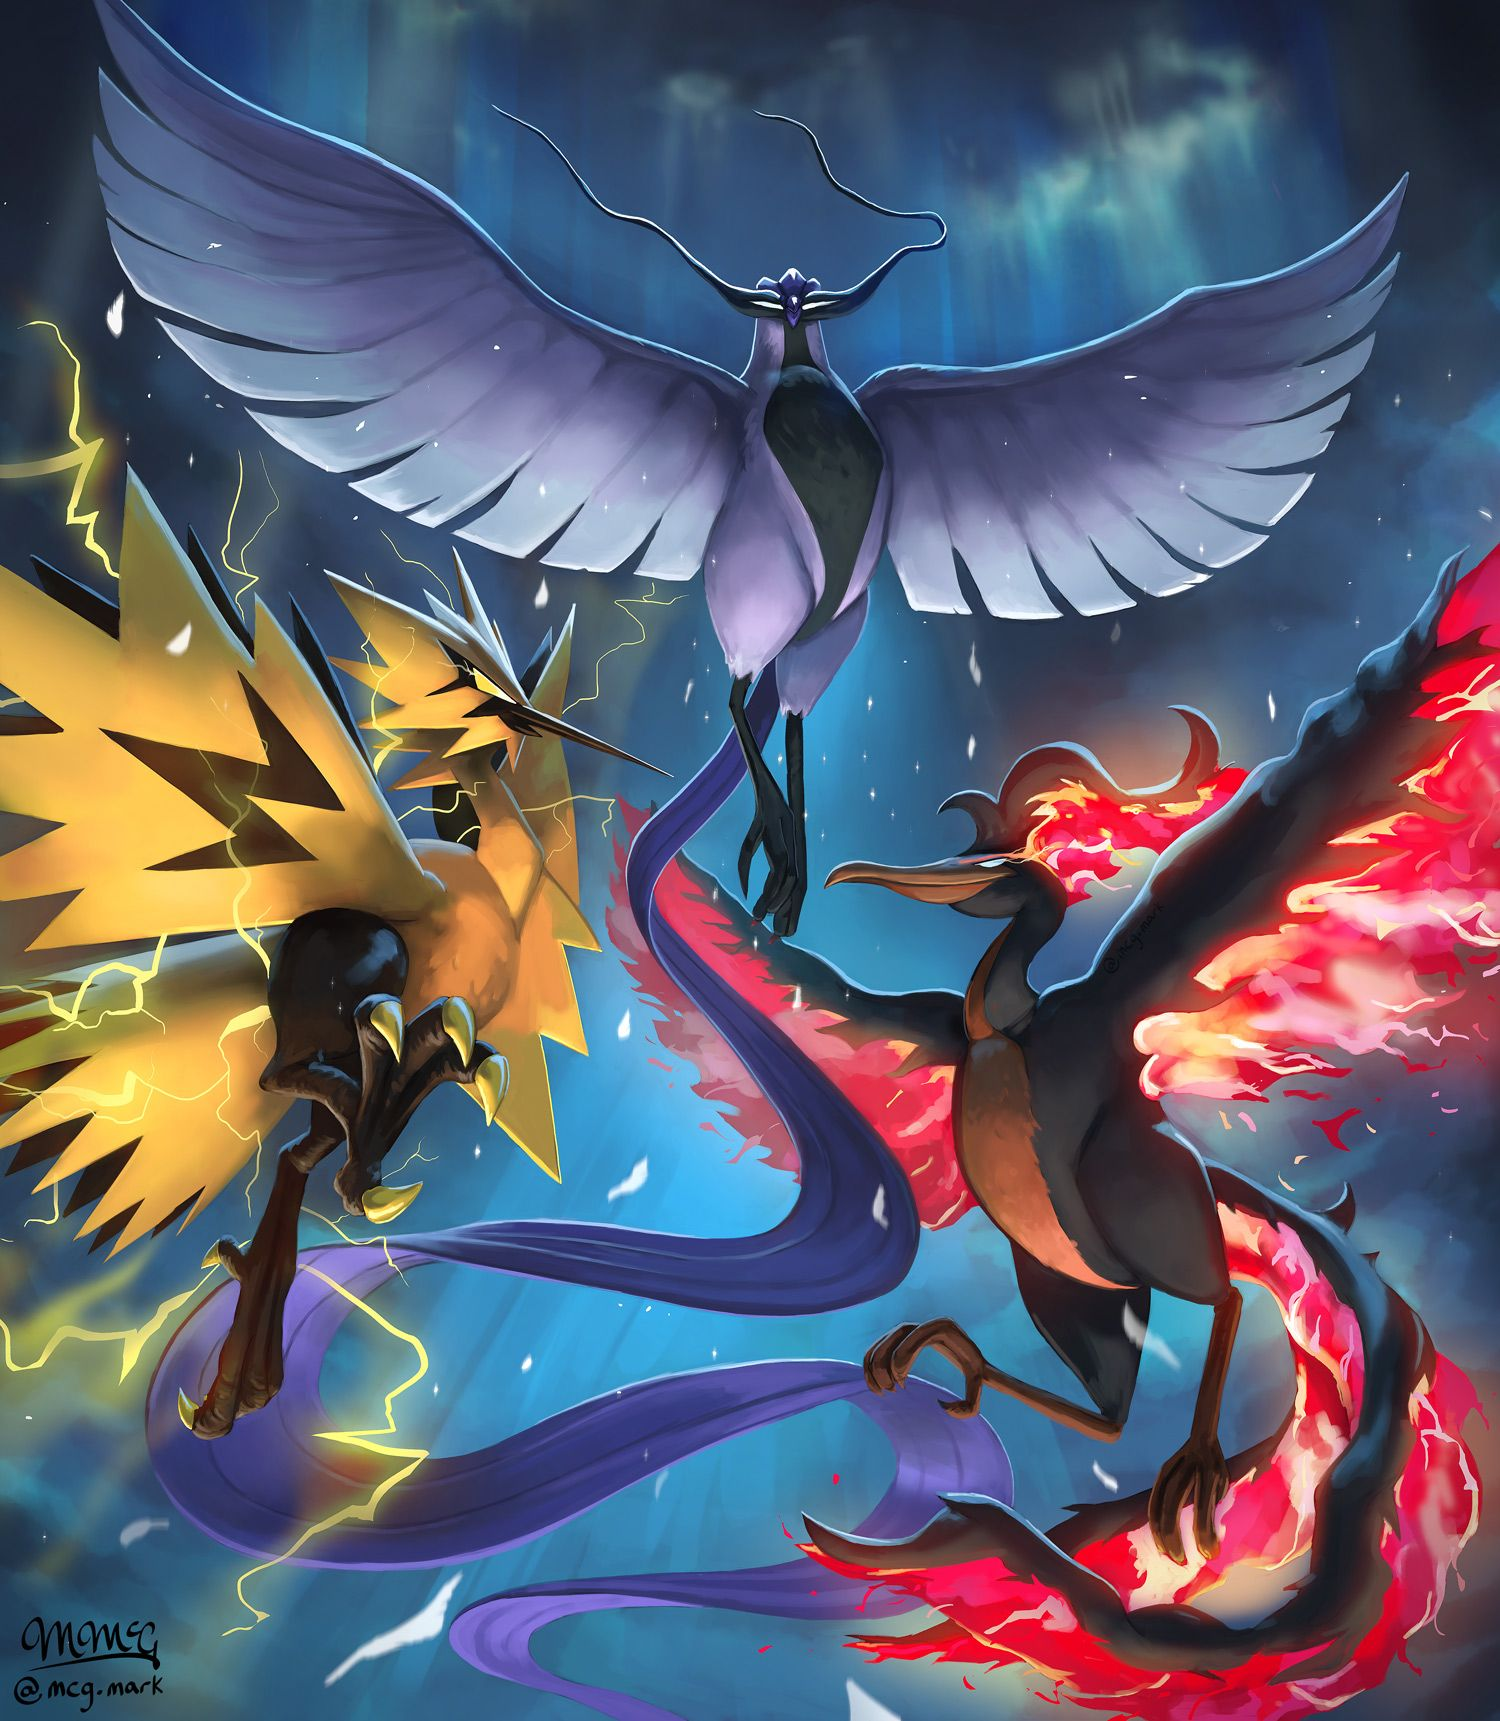 Articuno Zapdos Moltres By Mcgmark On Deviantart In 2020 Articuno Pokemon Moltres Pokemon Cool Pokemon Wallpapers